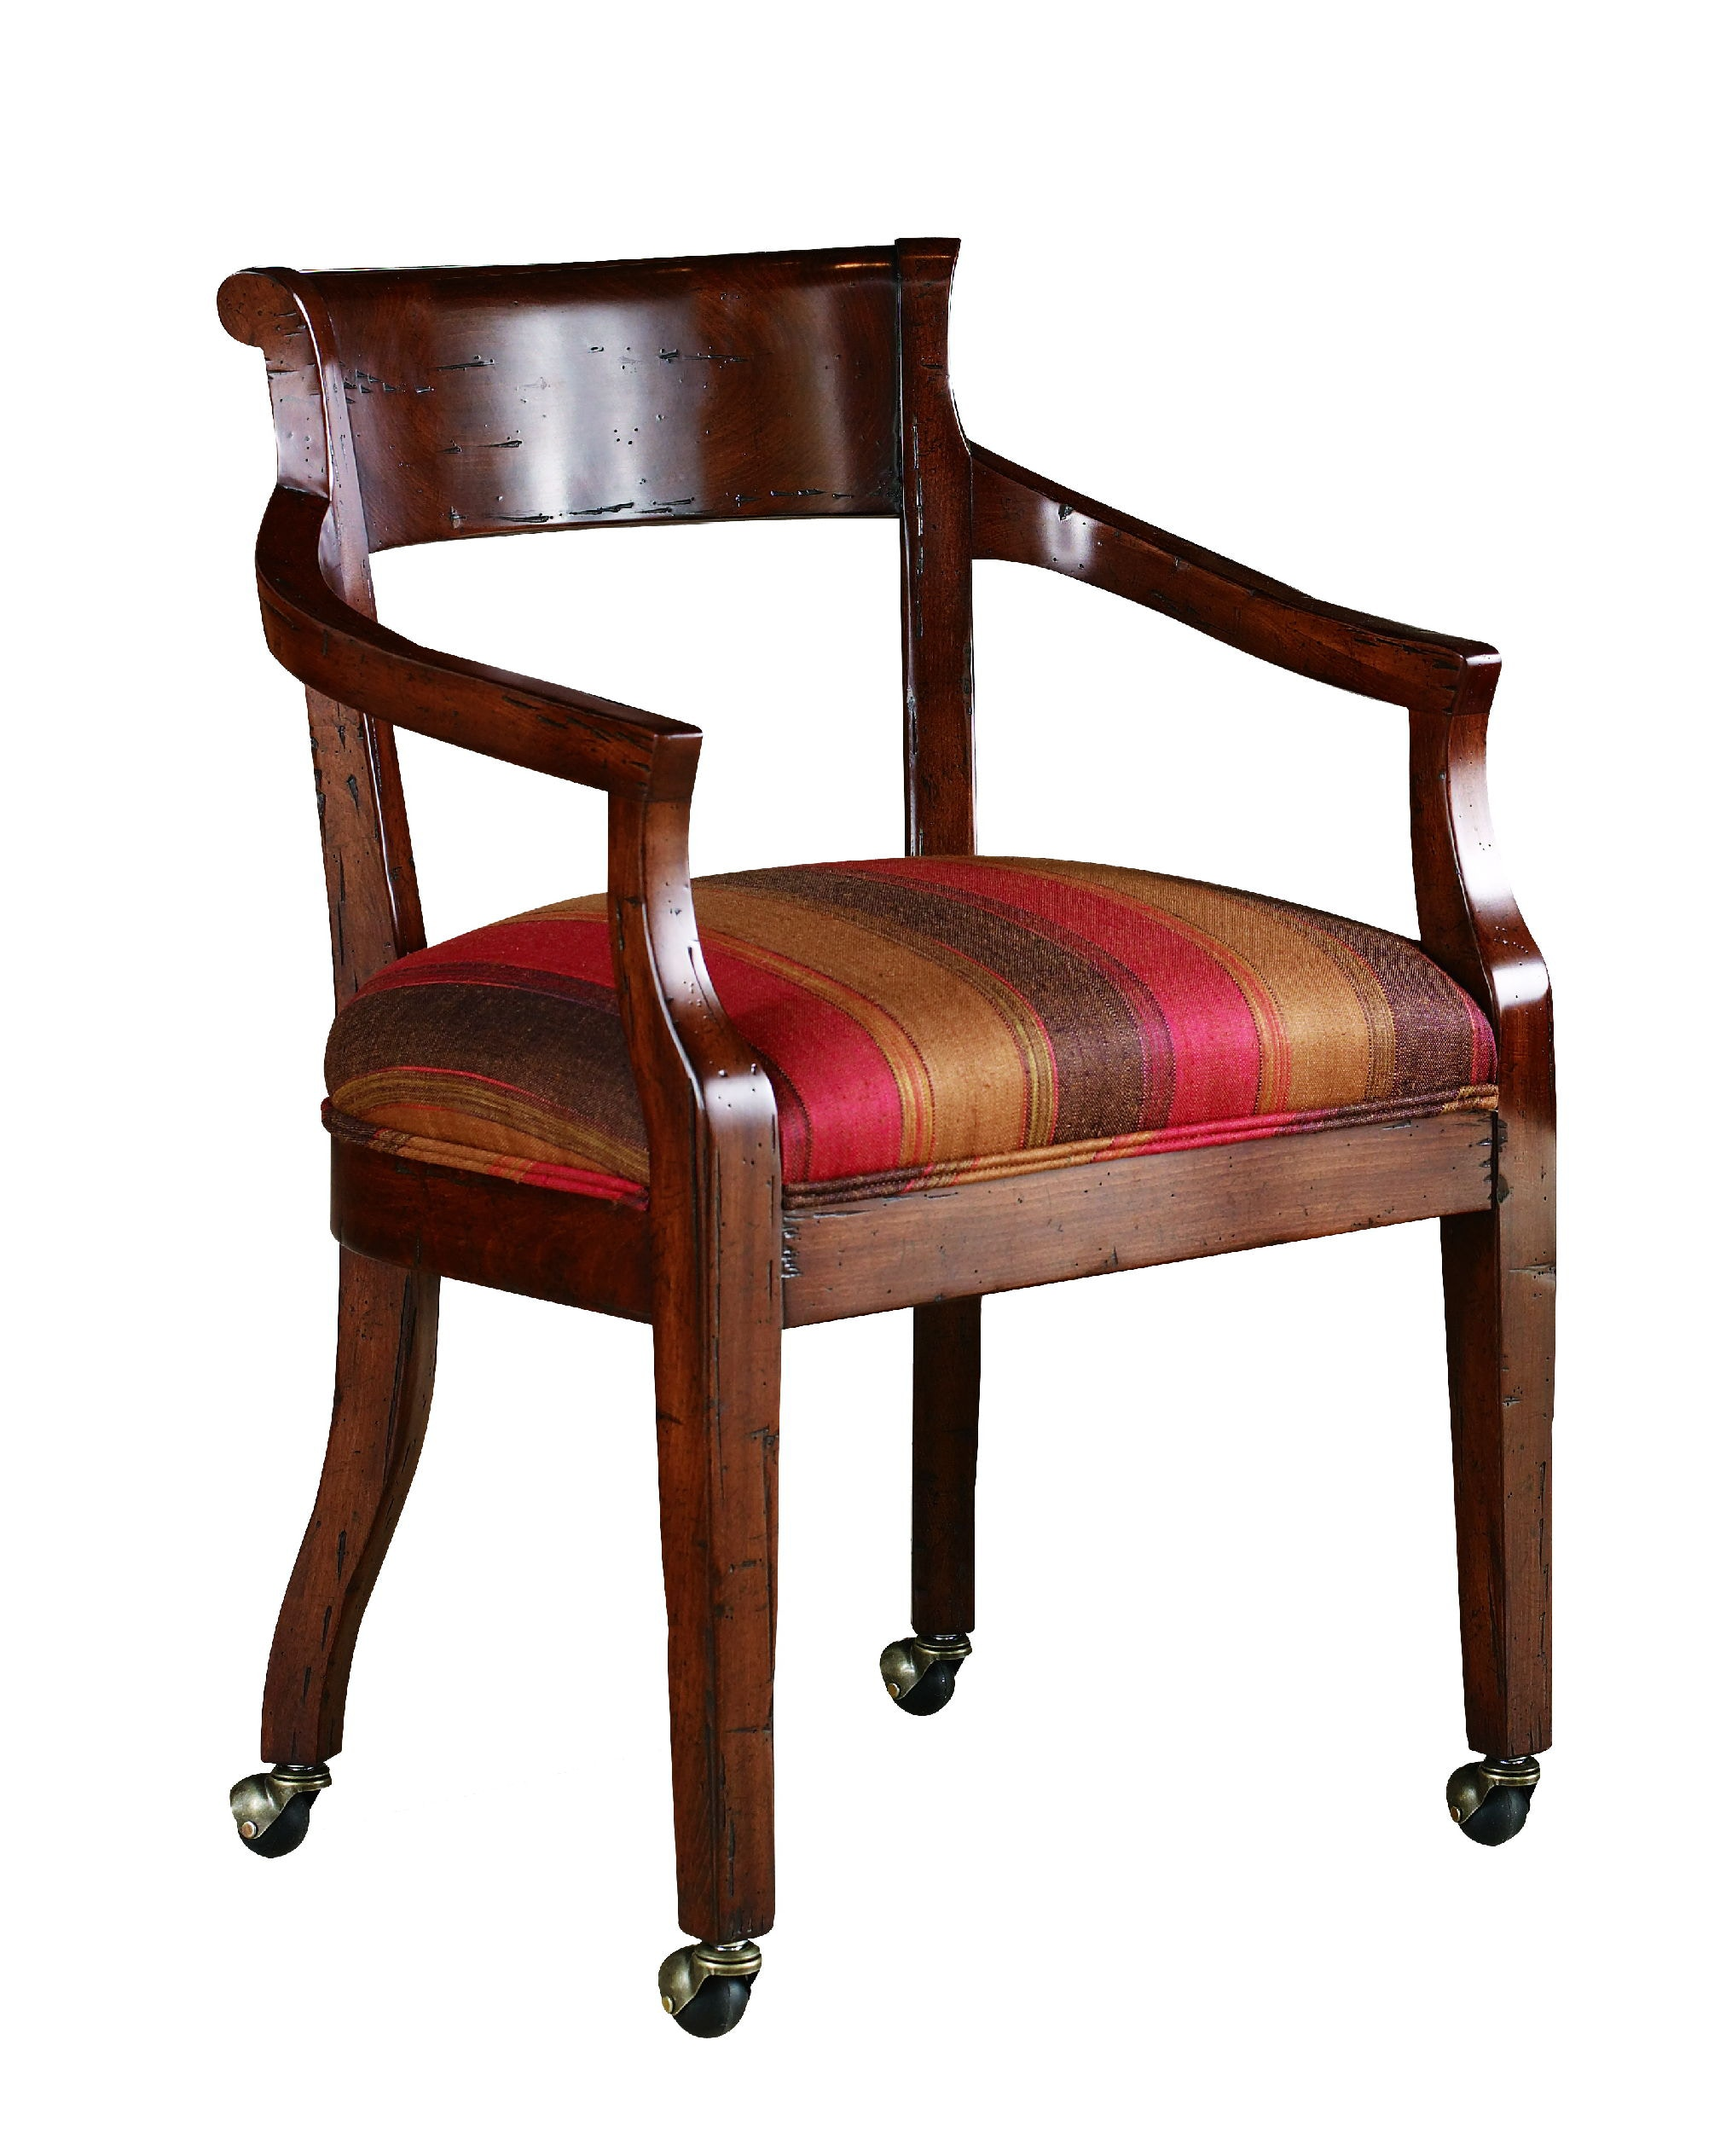 Chaddock Dining Room Hartford Upholstered Arm Chair CE0332A : Hickory Furniture Mart : Hickory, NC